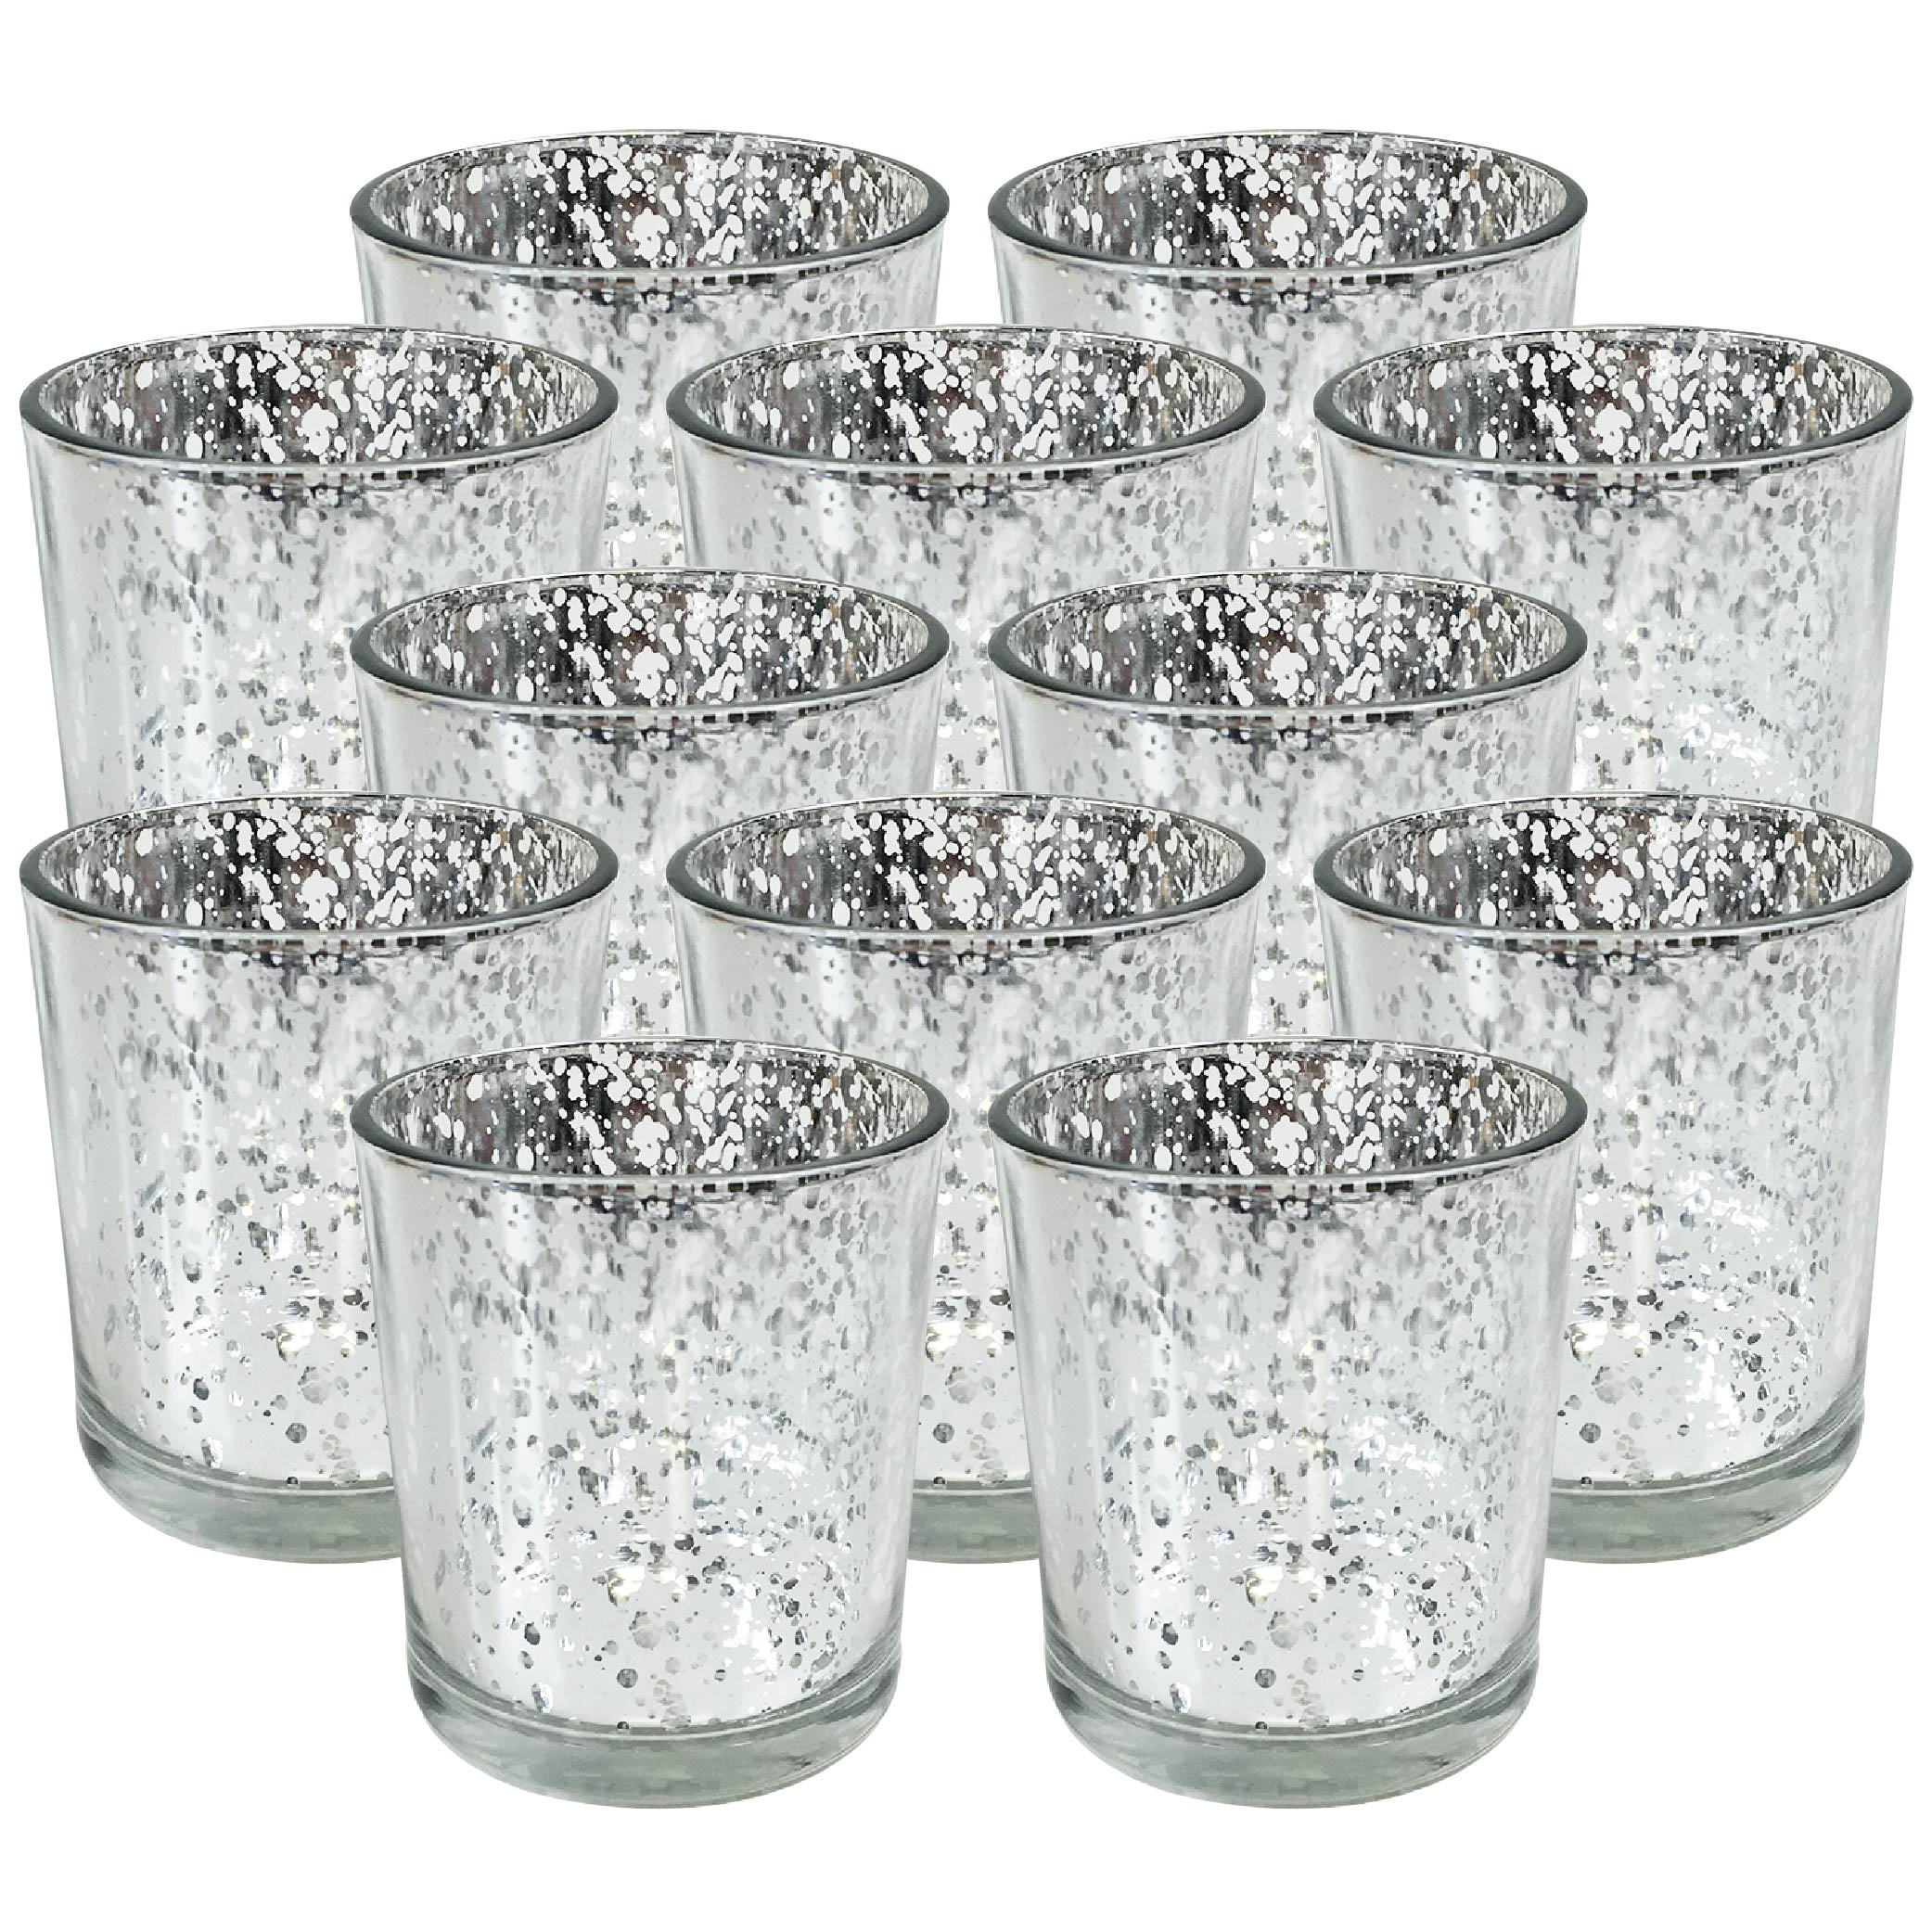 8 Count Christmas House Mercury Glass Tealight Candleholders Holiday Colors